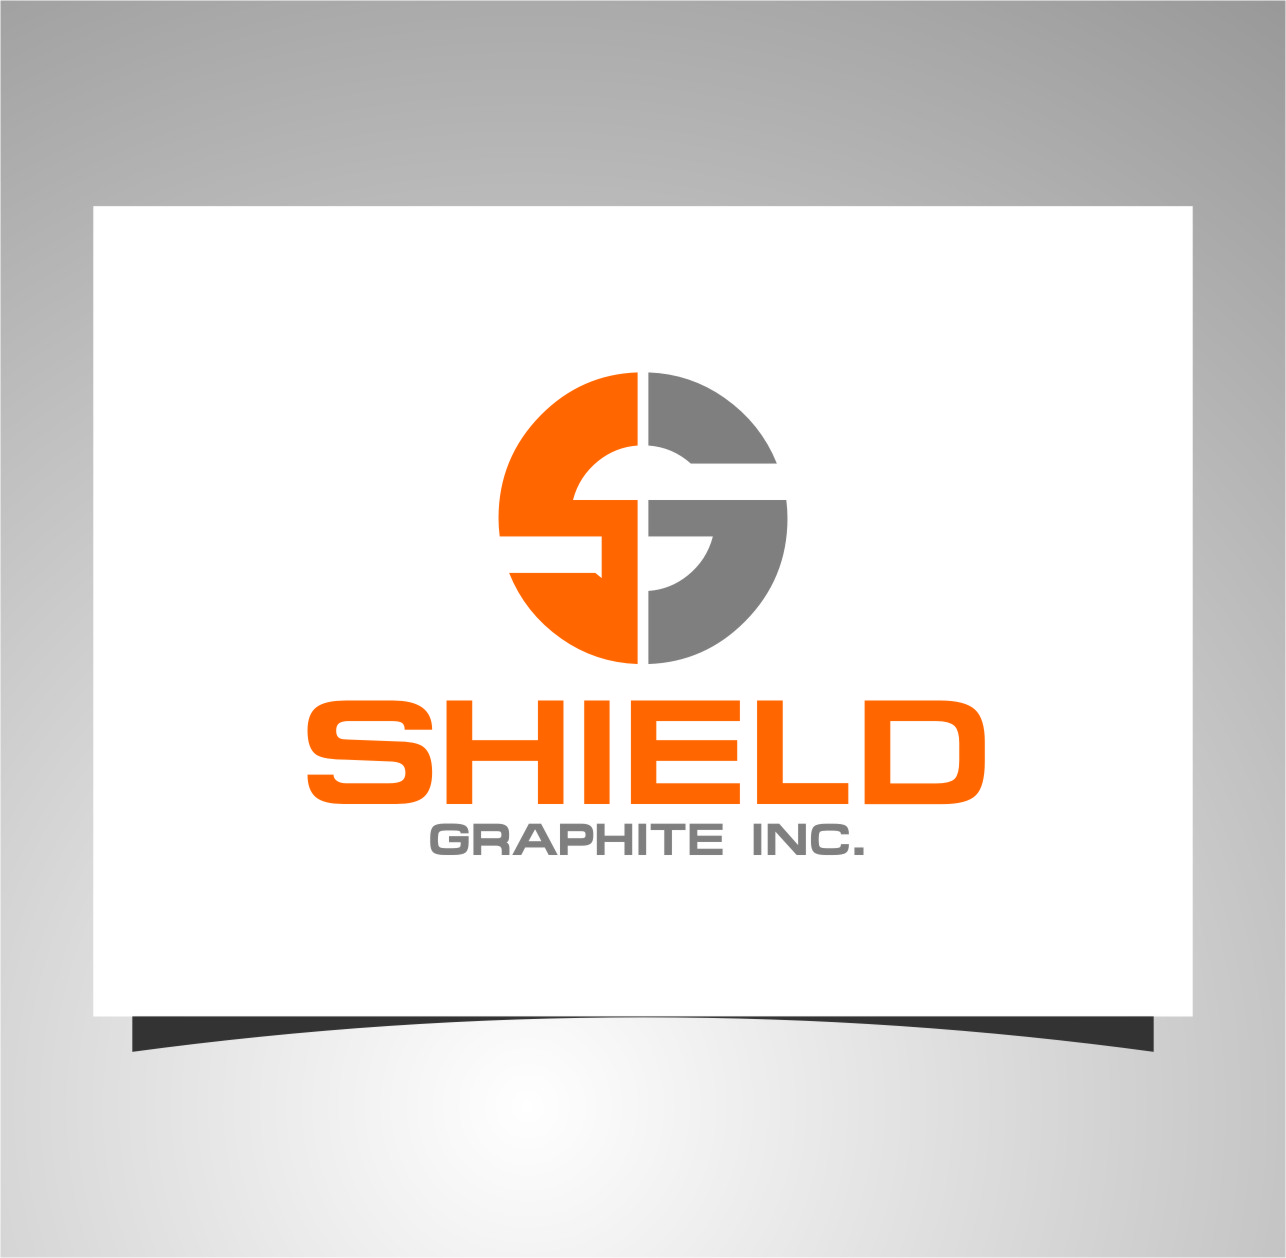 Logo Design by Ngepet_art - Entry No. 13 in the Logo Design Contest Imaginative Logo Design for Shield Graphite Inc..